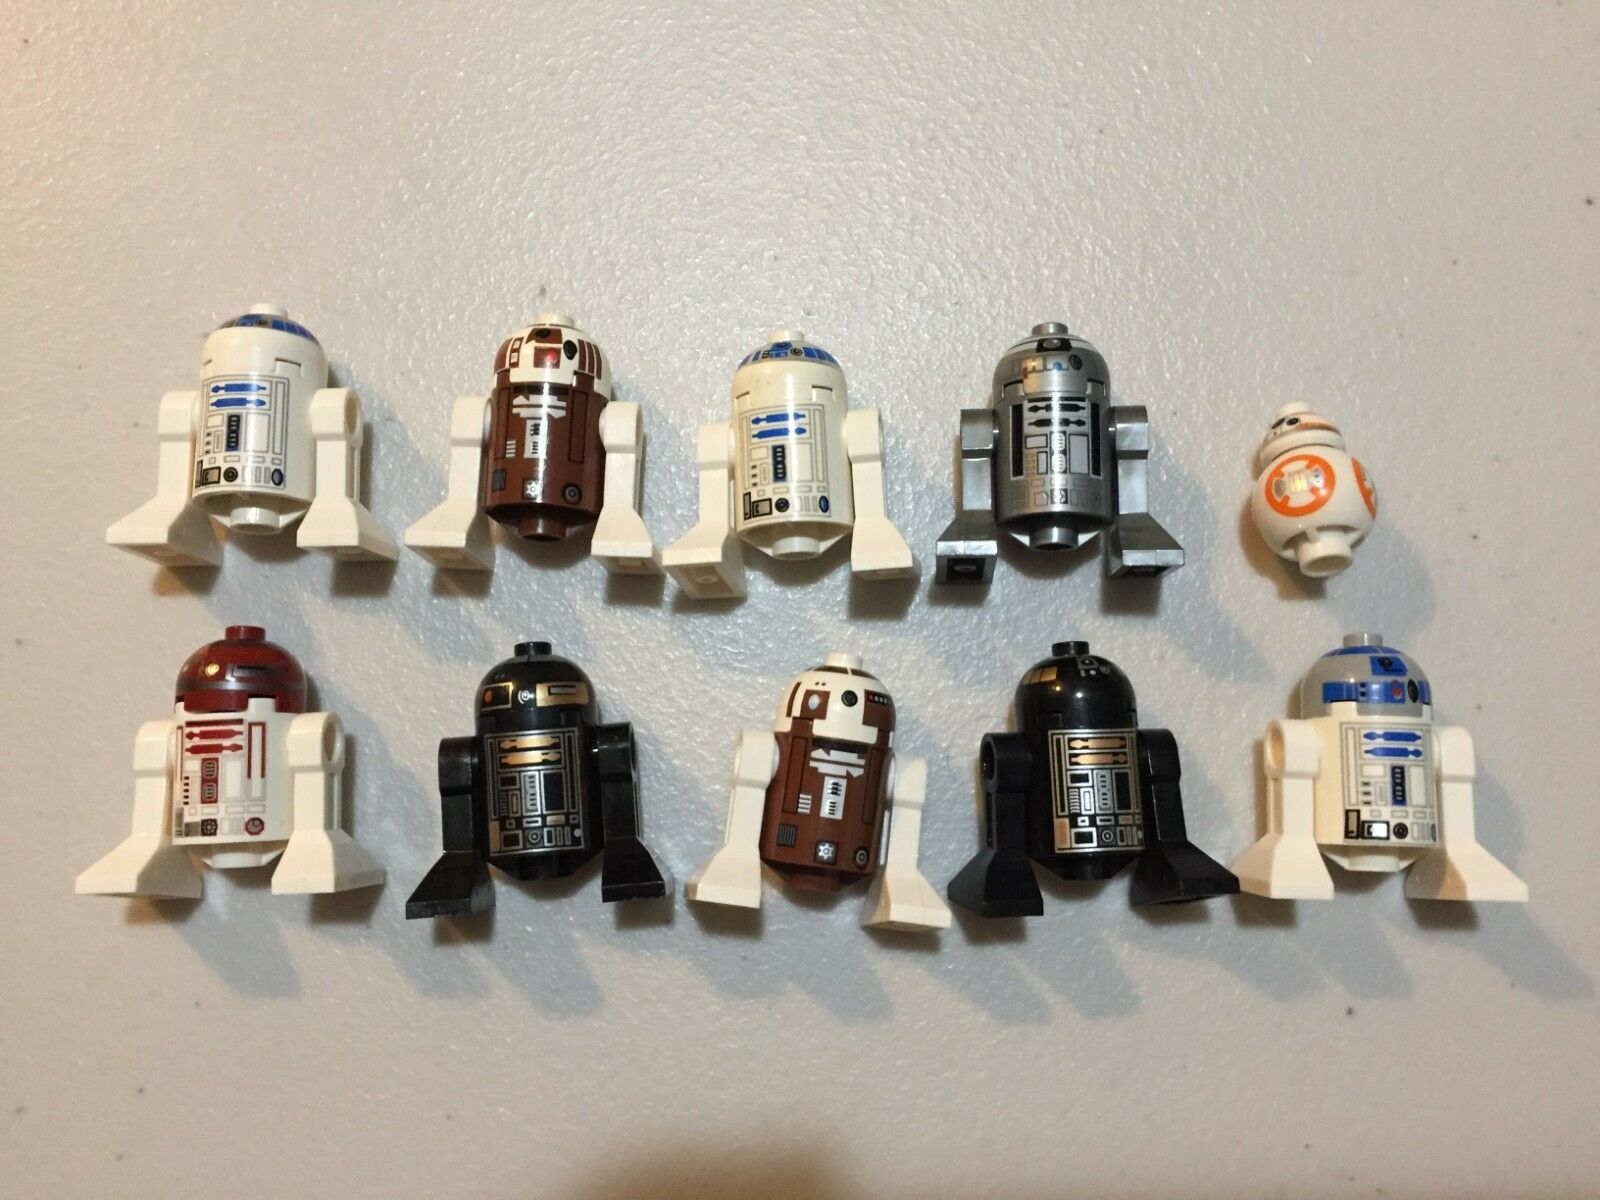 LEGO Star Wars Astromech Droid Lot of 10 minifig  R2-D2 Others m499B